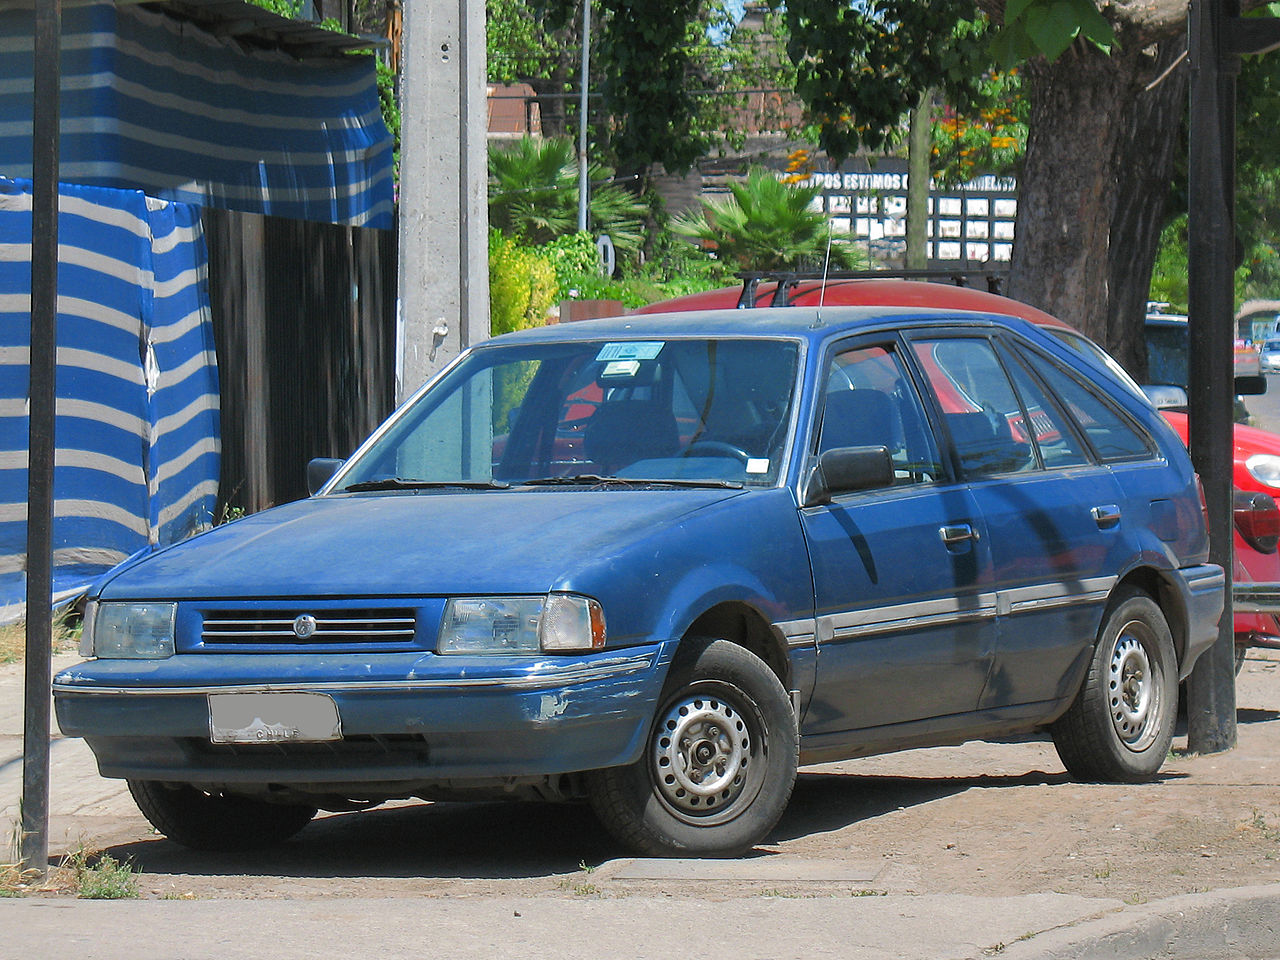 Ridiculous Rebadges The Mazda 323 Fords First World Car 1989 Mercury Tracer Wiring Diagram Uploadwikimediaorg Wikipedia Commons Thumb 5 57 16 28877754461629 1280px